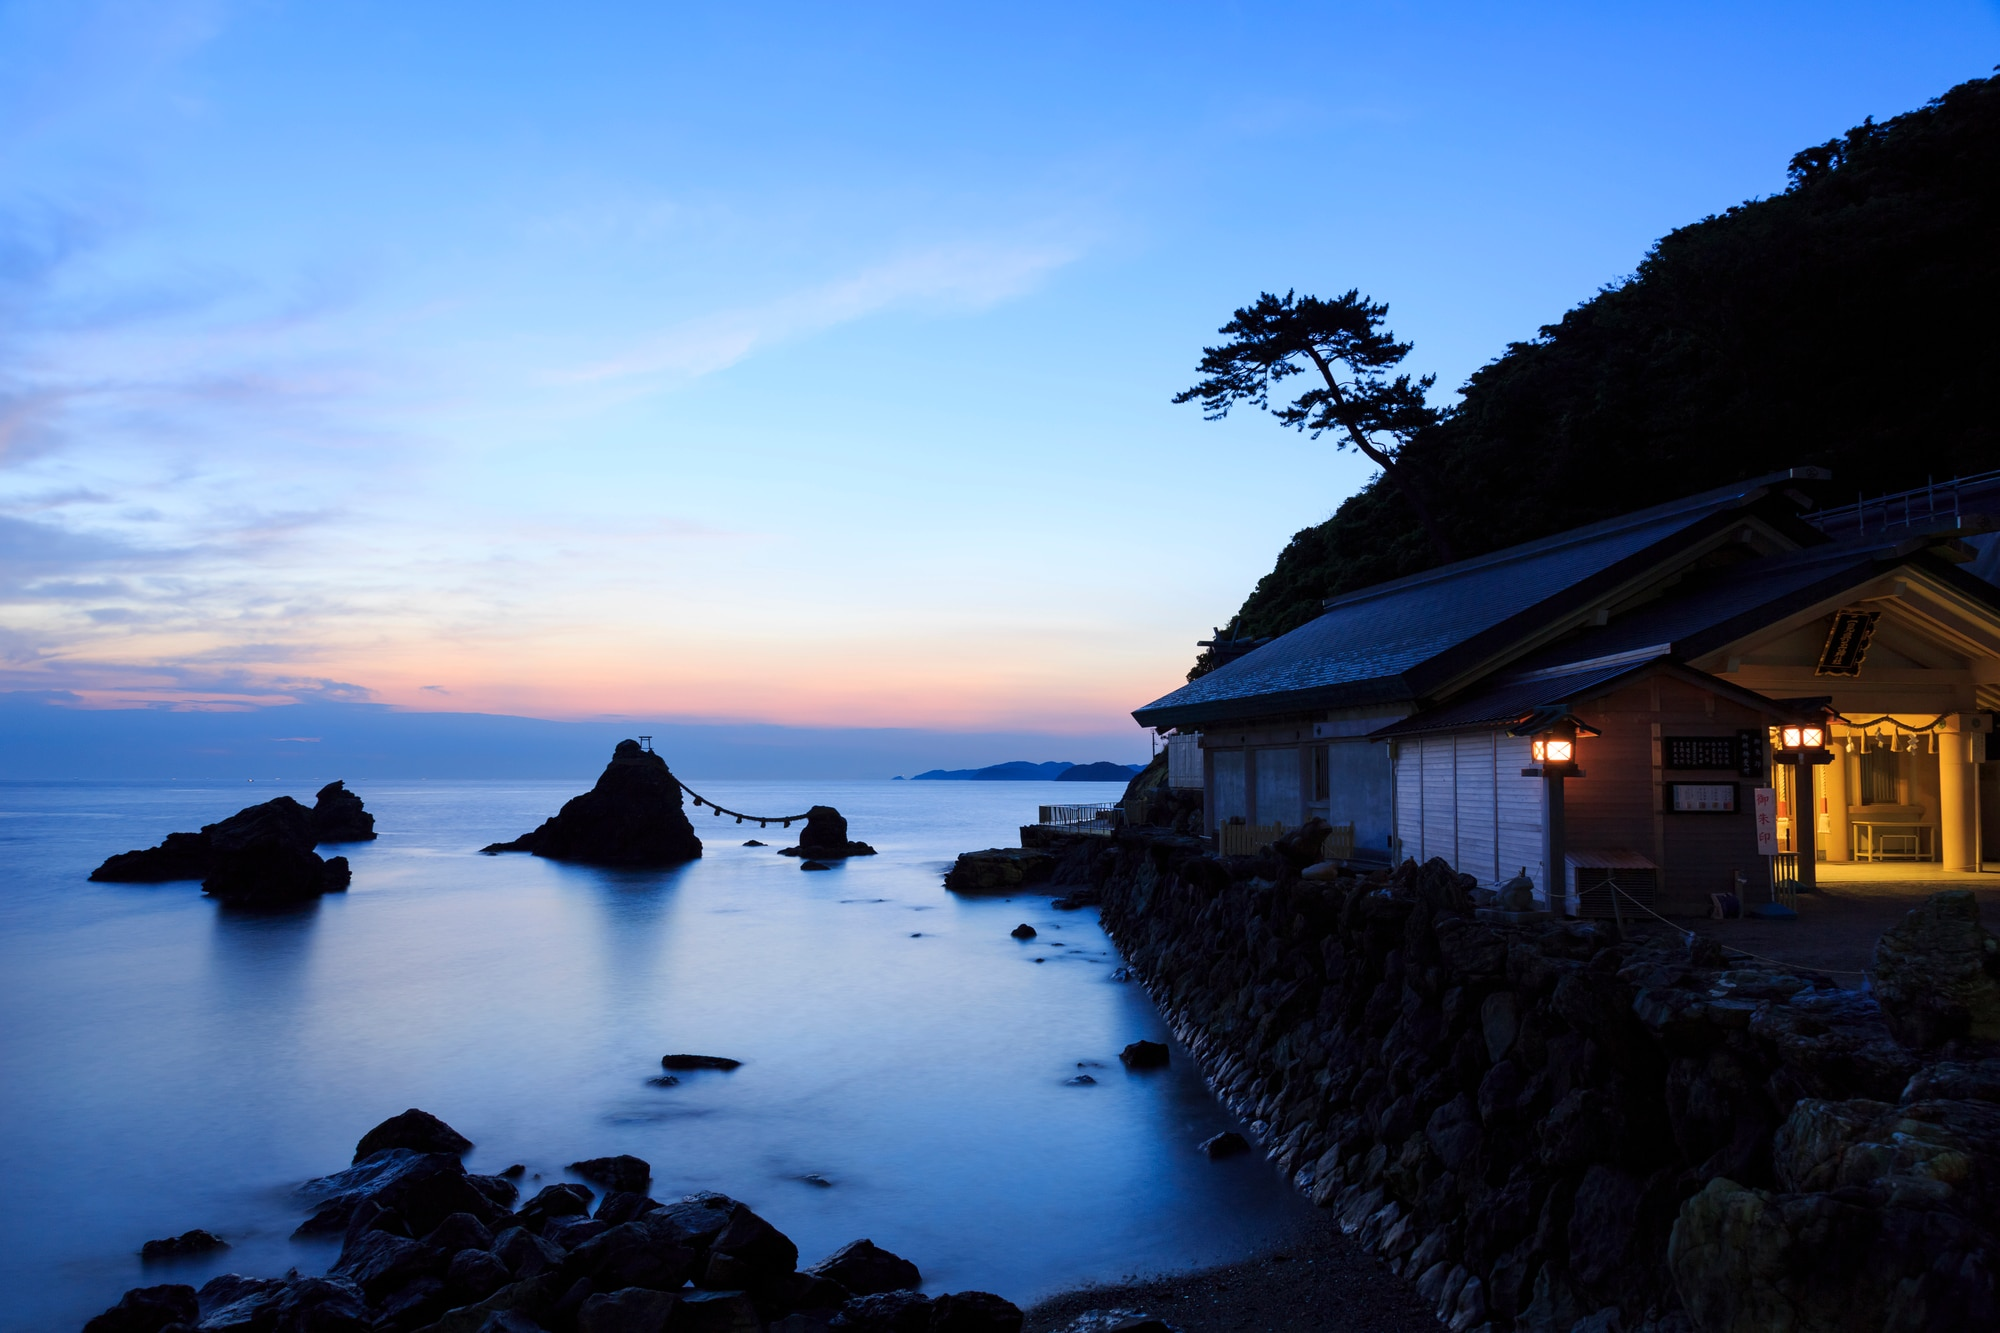 The Top 8 Things to Do in Mie Prefecture, Home of Japan's Most Sacred Shrine